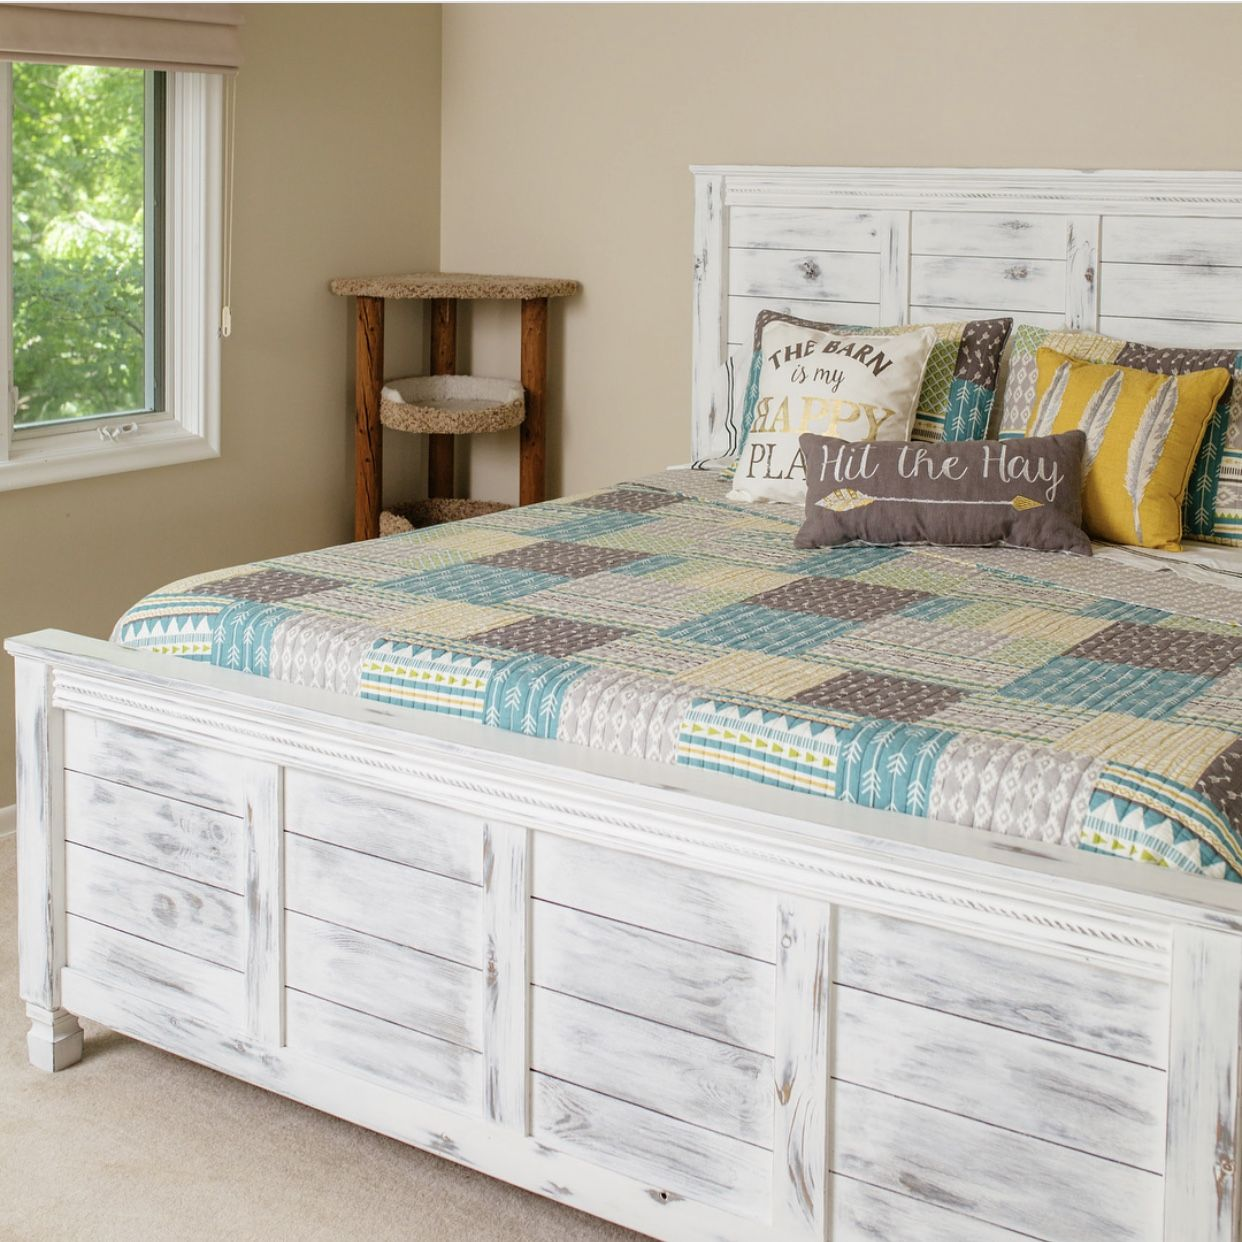 Rustic farmhouse style king size bed Bed, New beds